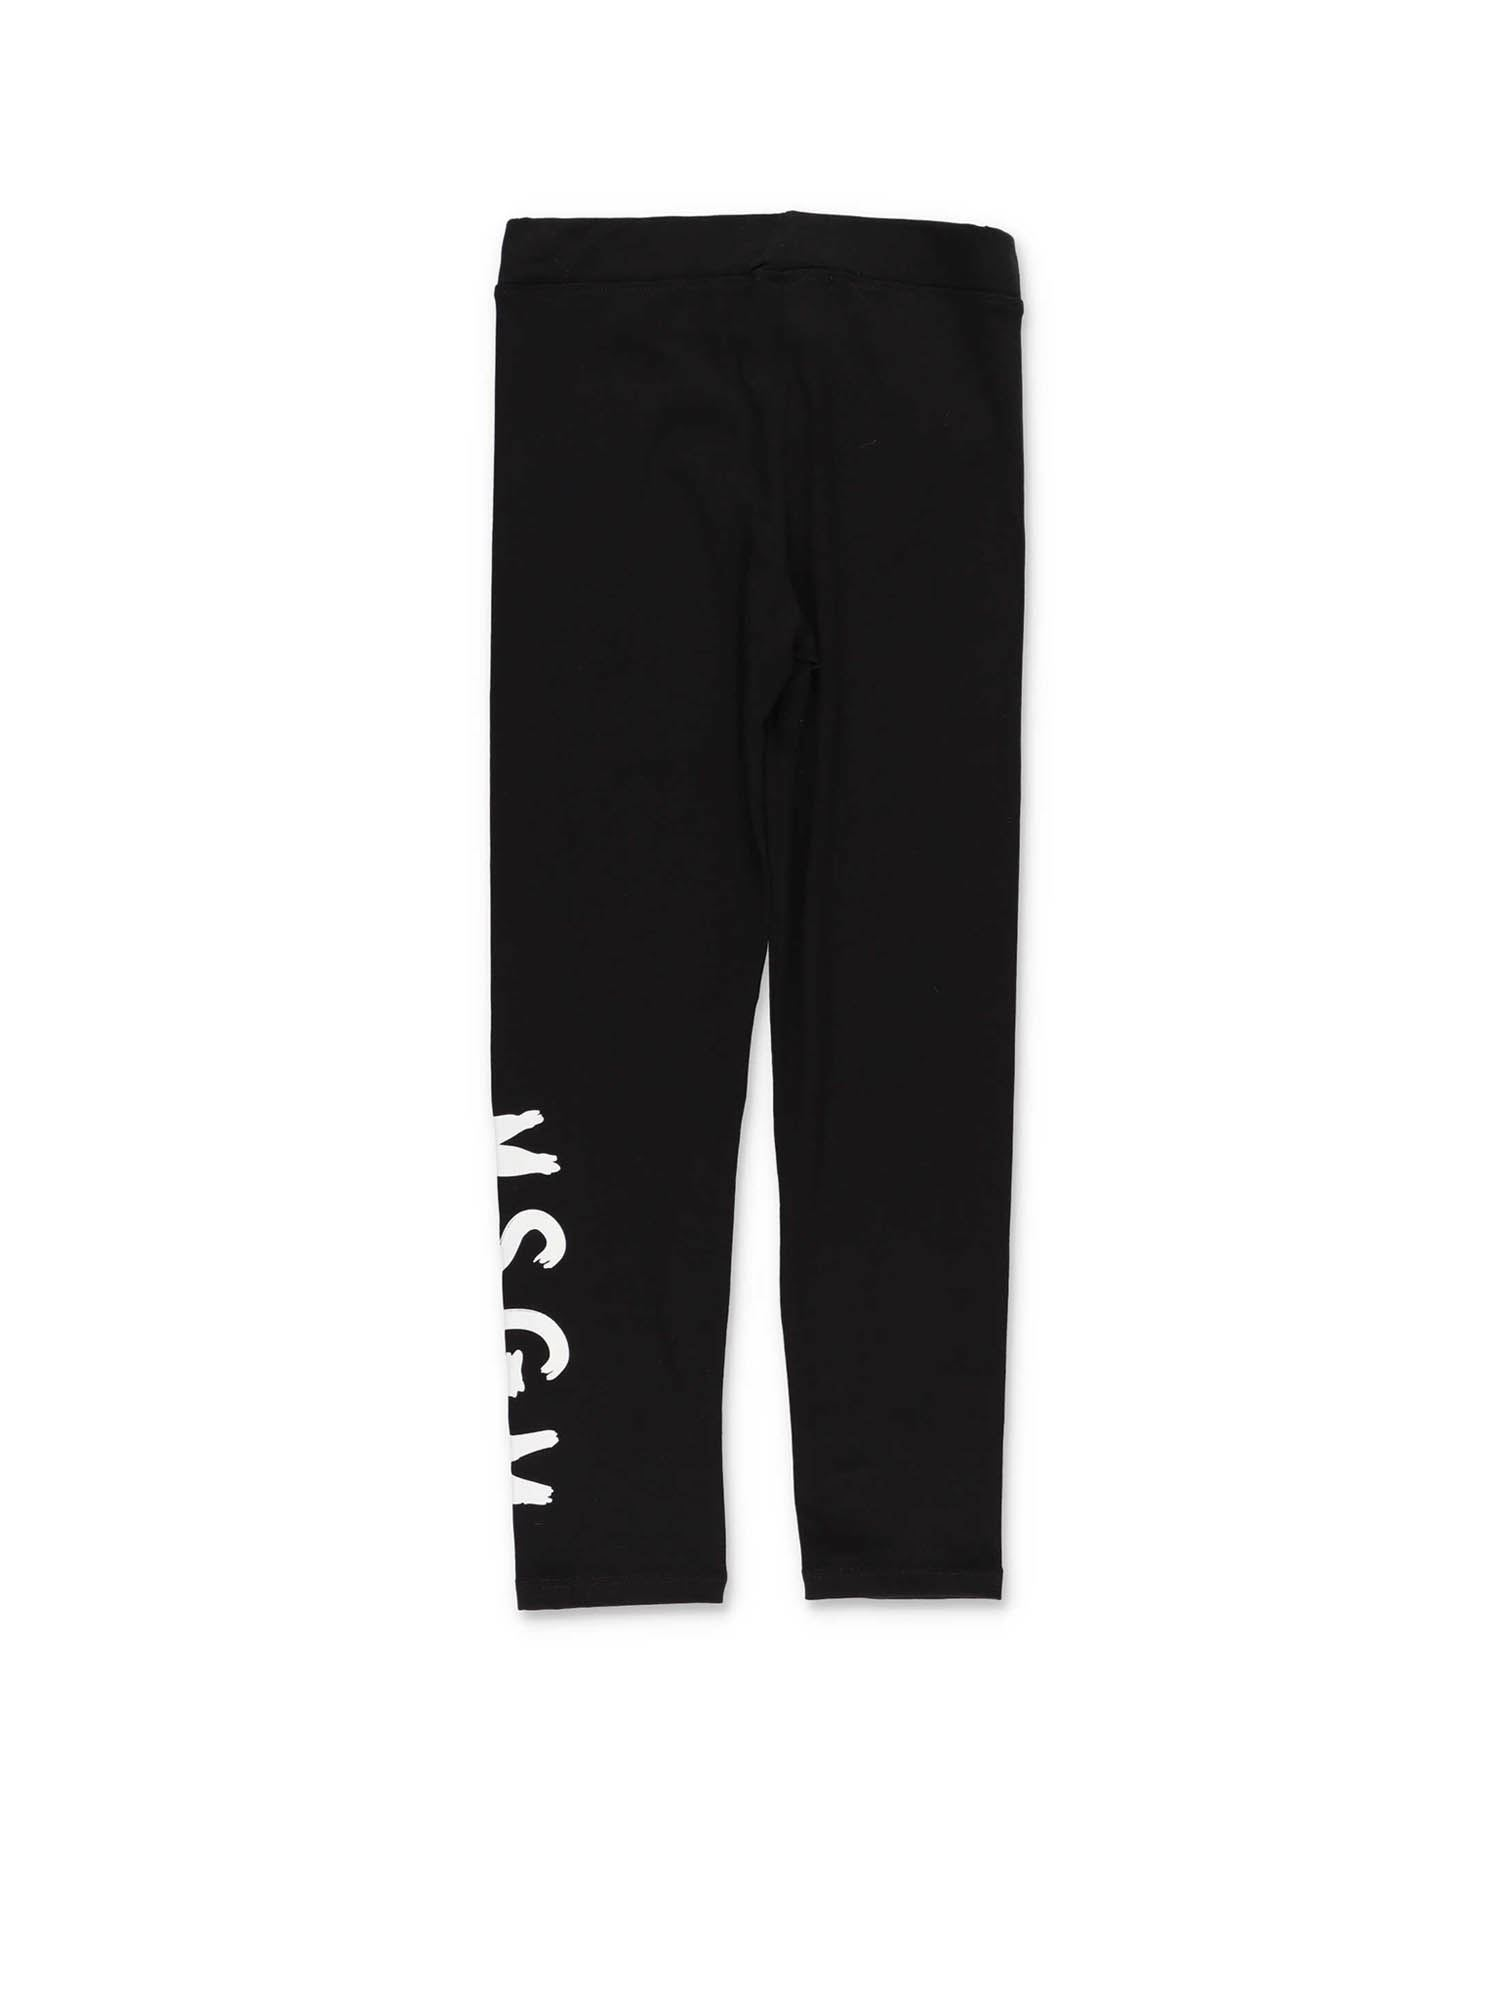 Msgm LOGO LEGGINGS IN BLACK